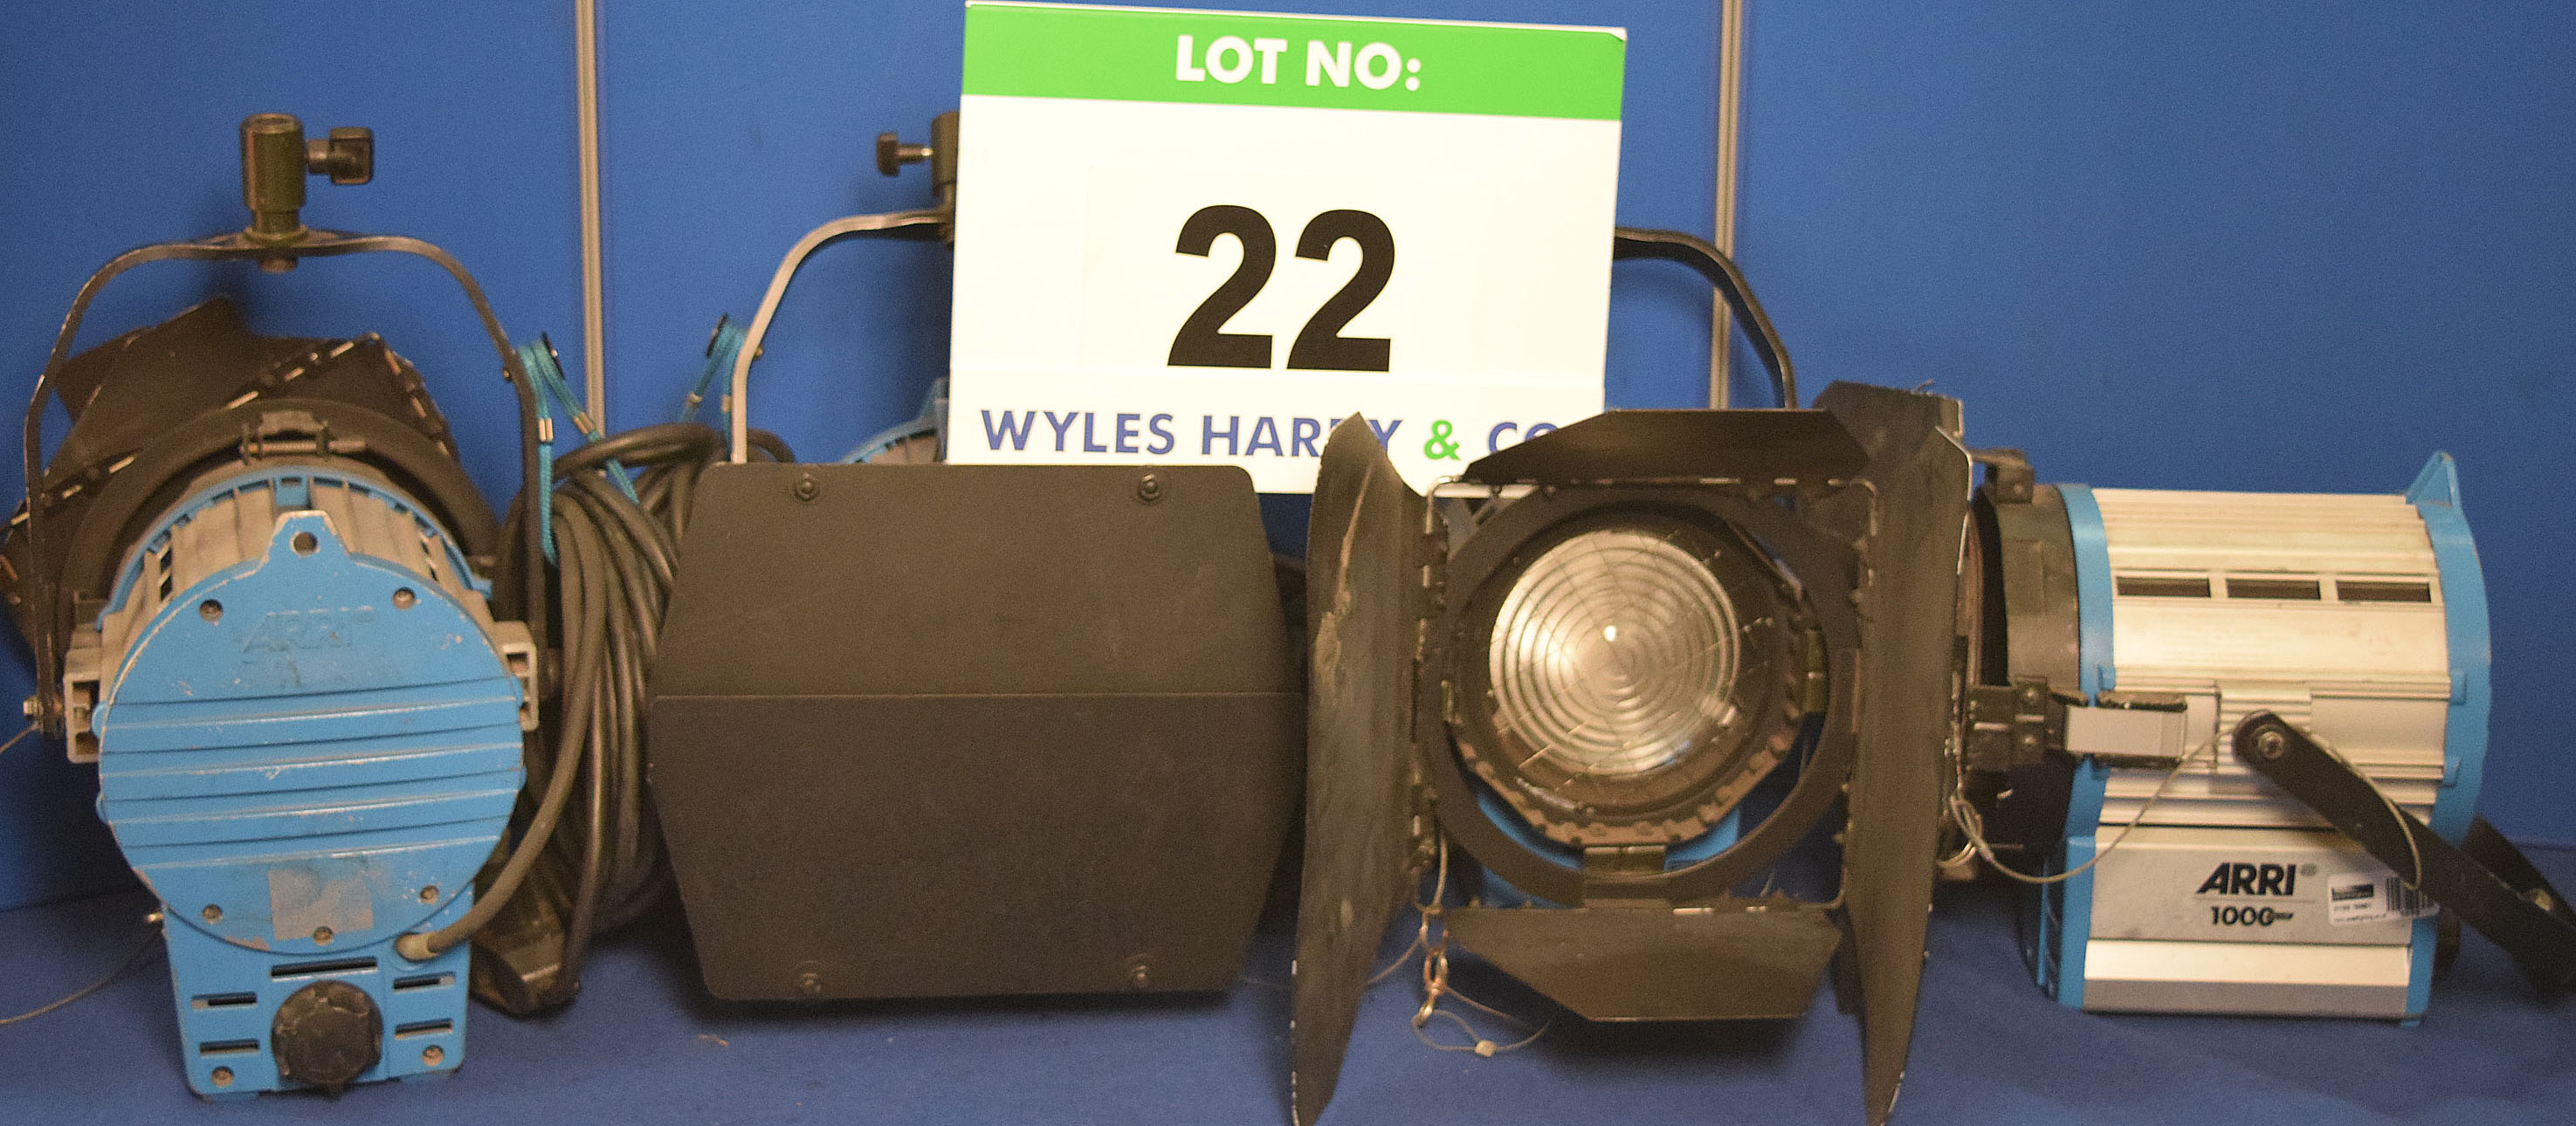 Lot 22 - Four ARRI 1000 Plus 1000W Lights each with fitted Barn Doors, Stirrup Mount and Switched Power Feed